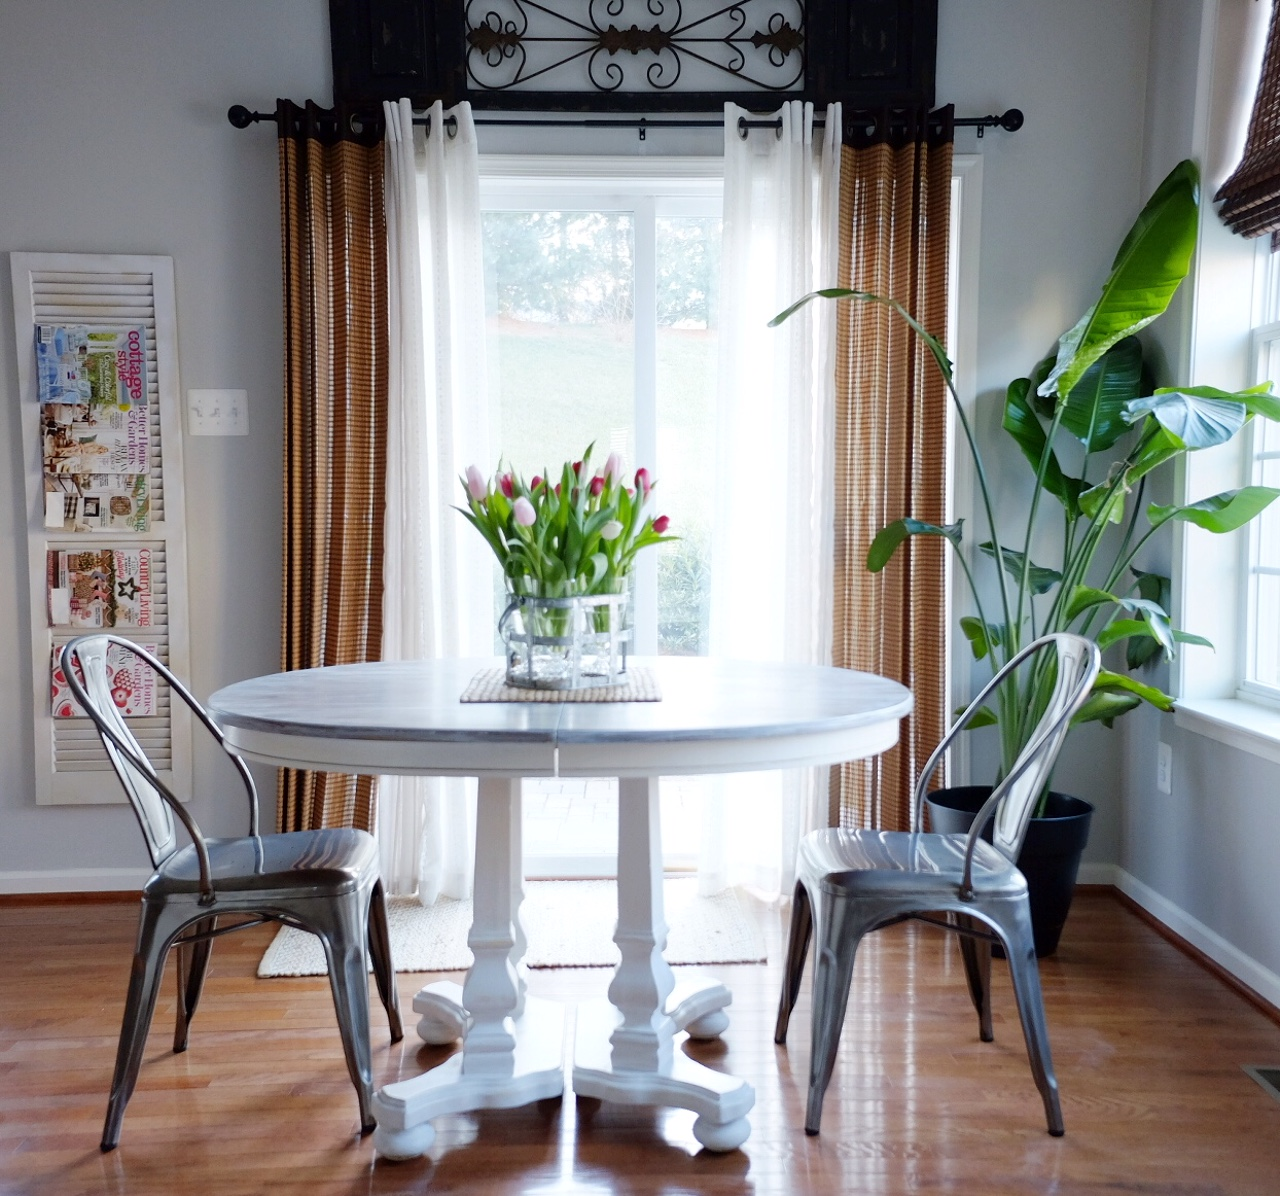 Revamping a table with homemade chalk paint